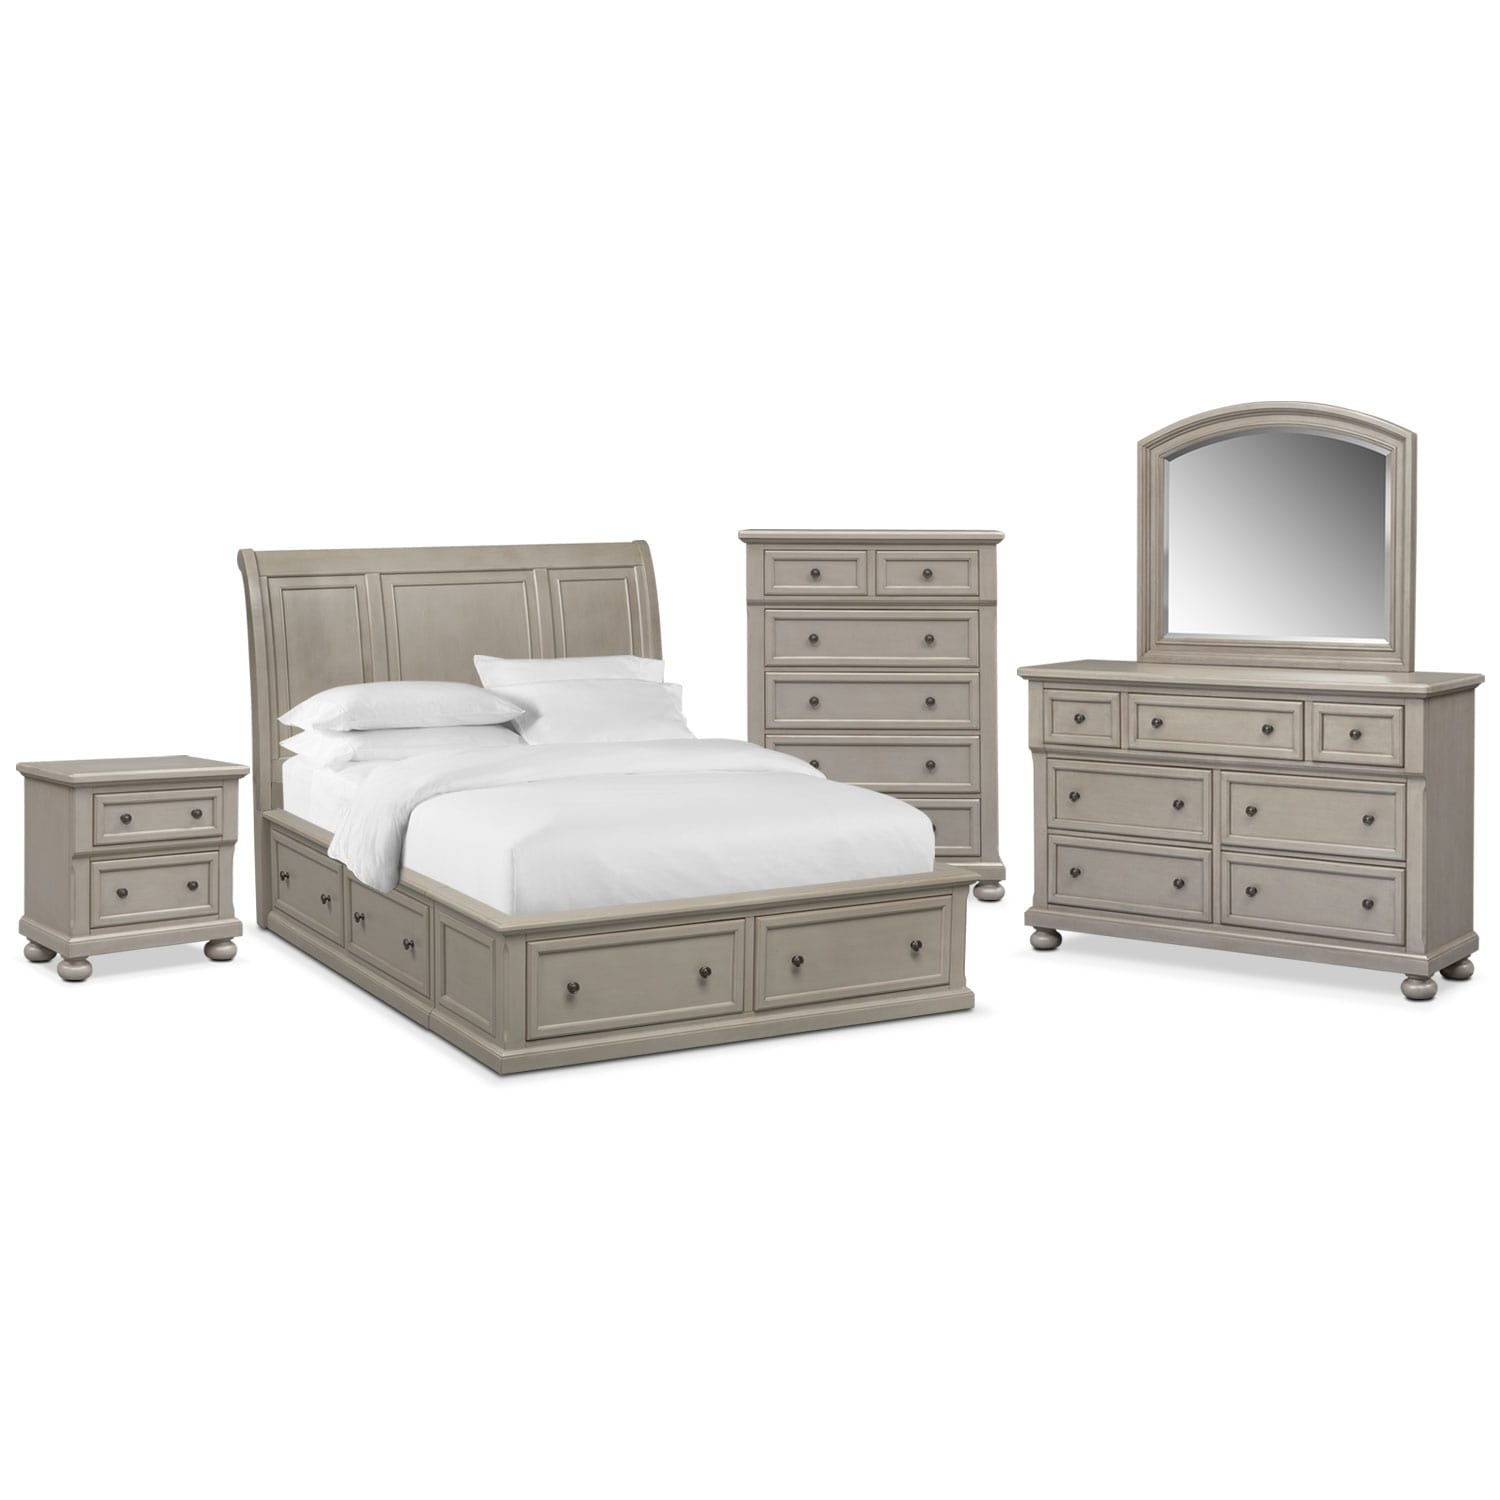 Hanover Queen 7 Piece Storage Bedroom Set   Gray